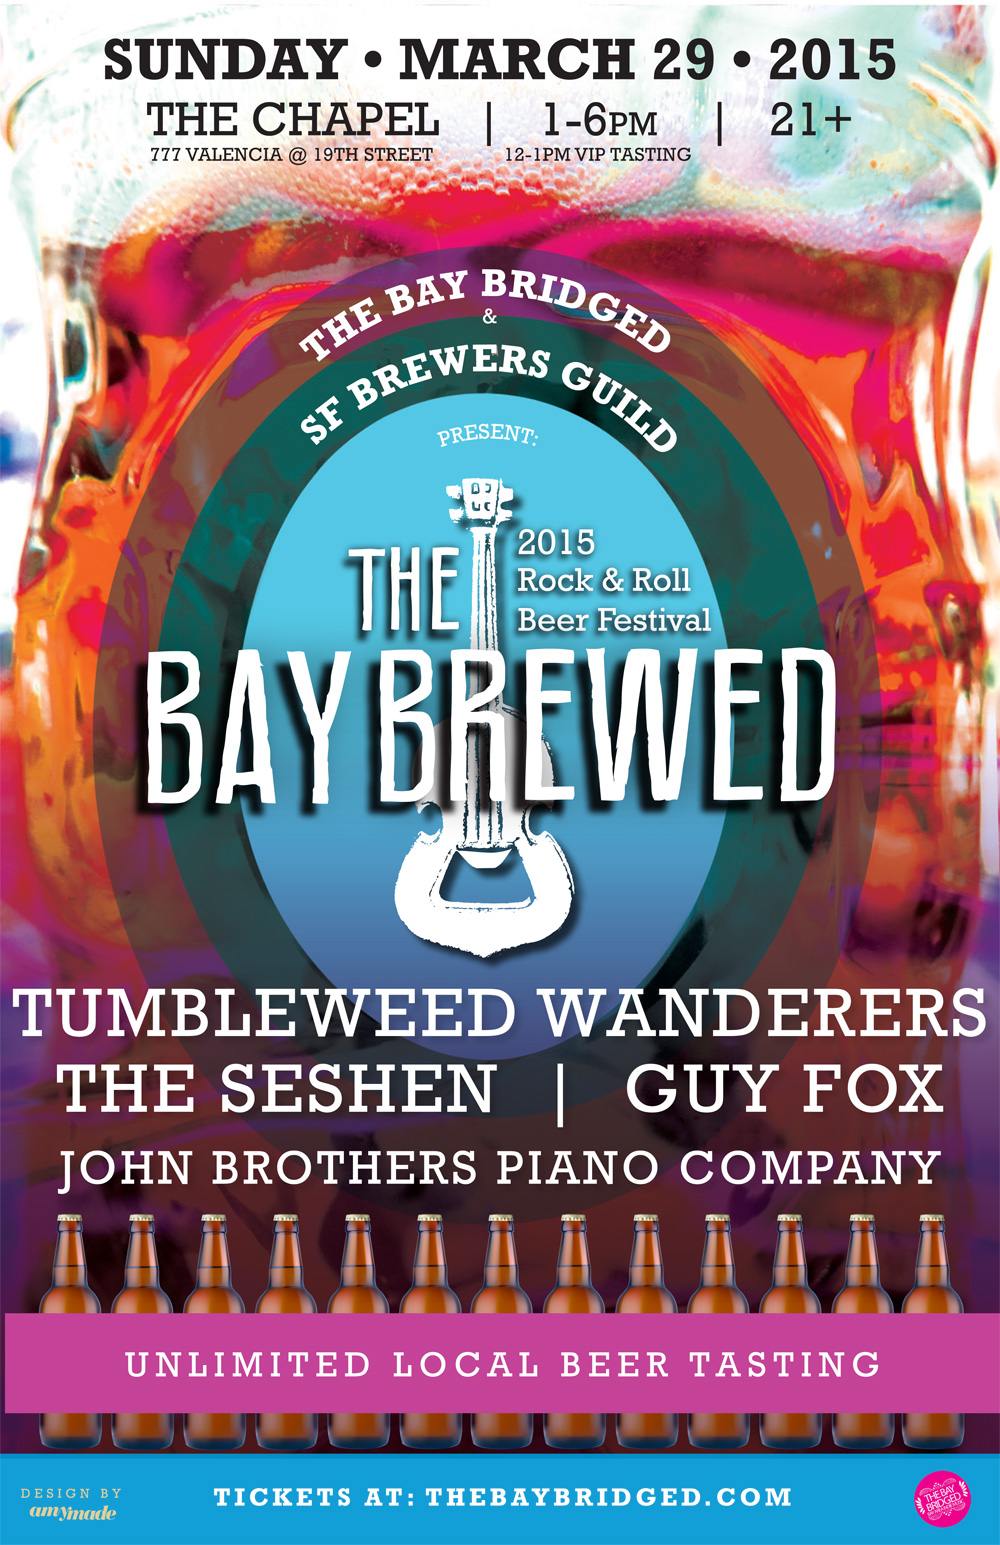 The Bay Brewed 2015